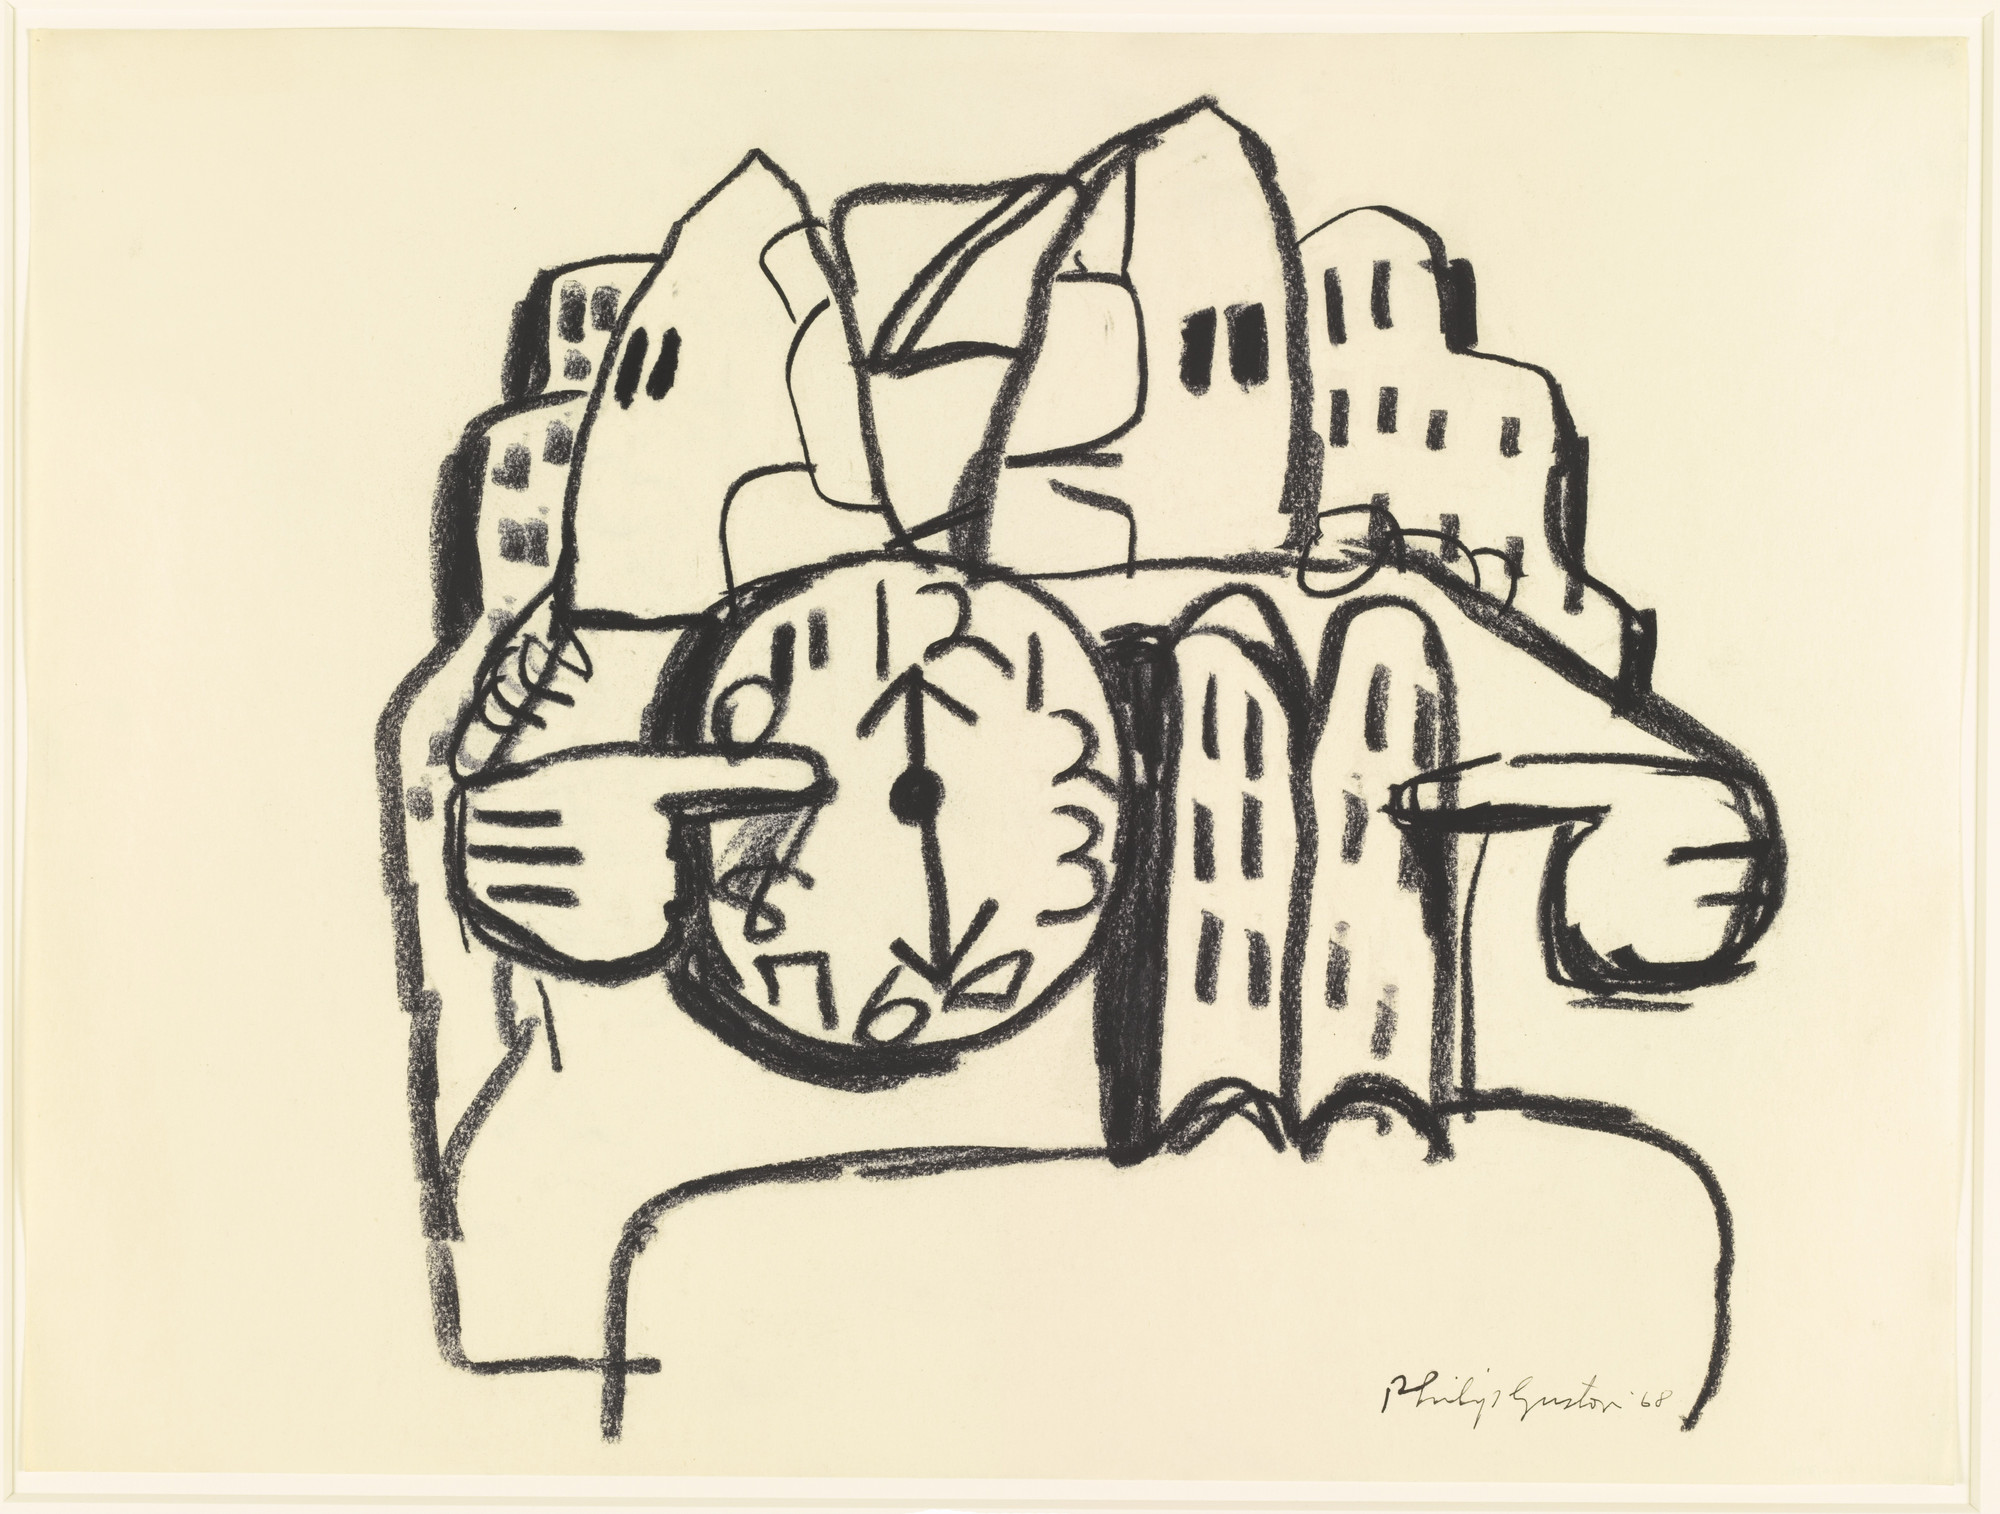 Philip Guston. Untitled. 1968